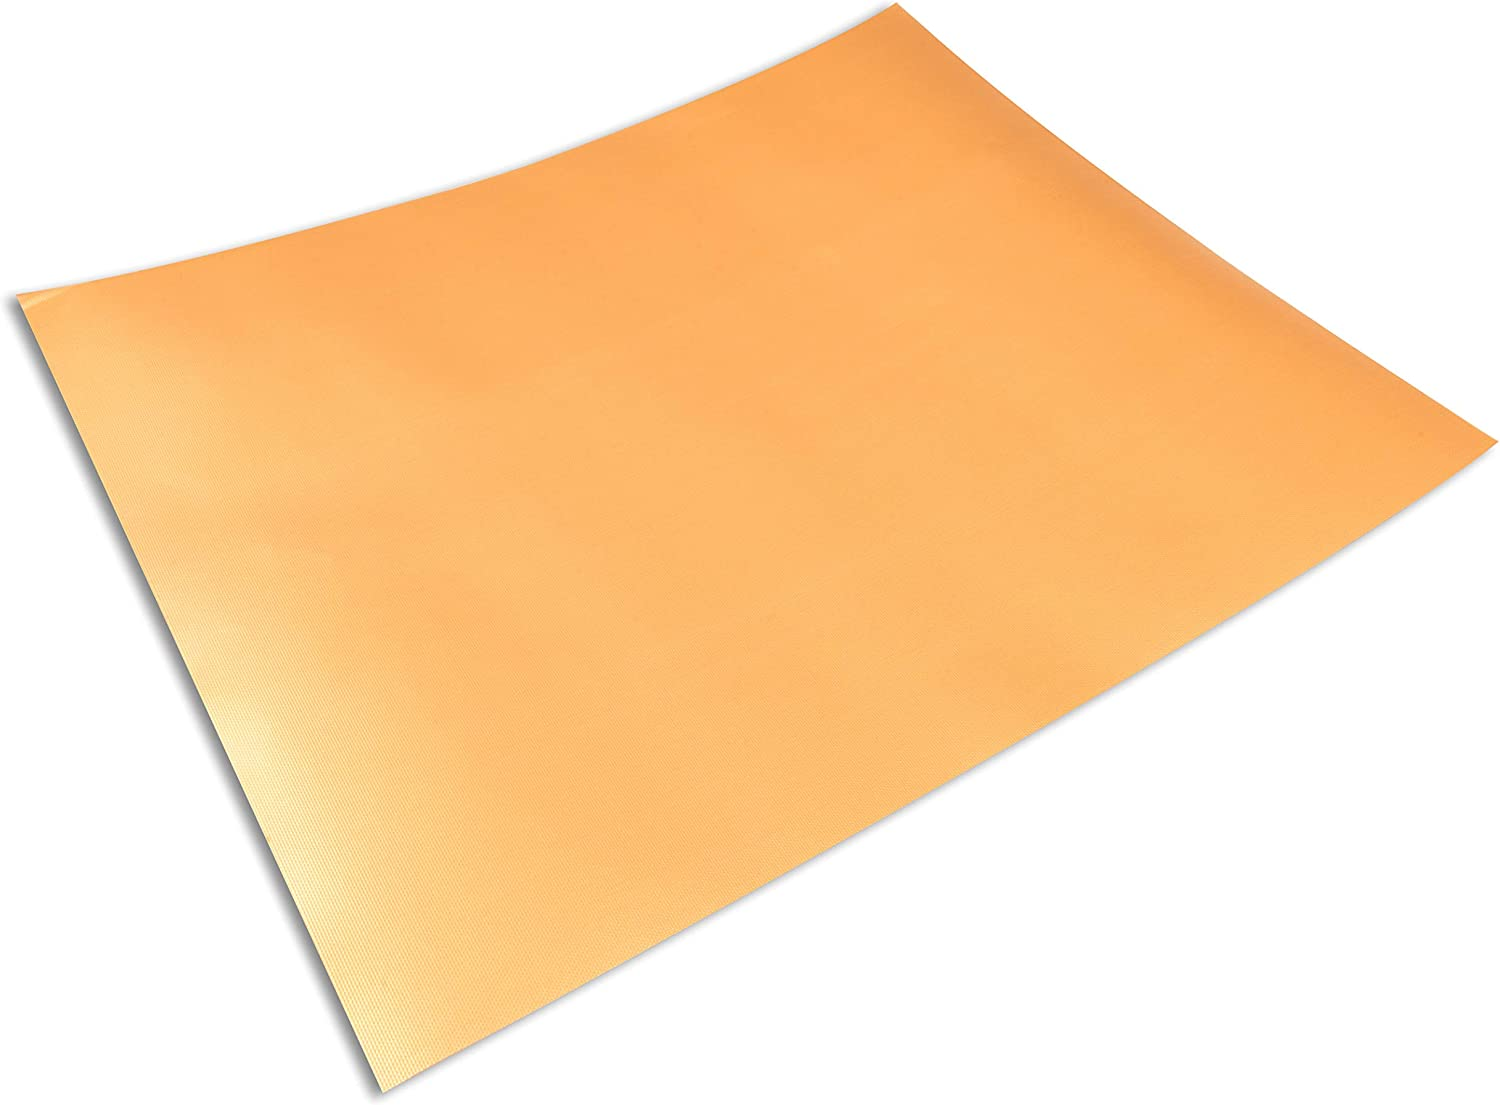 2-Pack Cooks Innovations Copper Non-Stick Oven Liner - Heavy Duty Sheet to Catch Spills in Convection, Electric, Gas, Toaster & Microwave Ovens